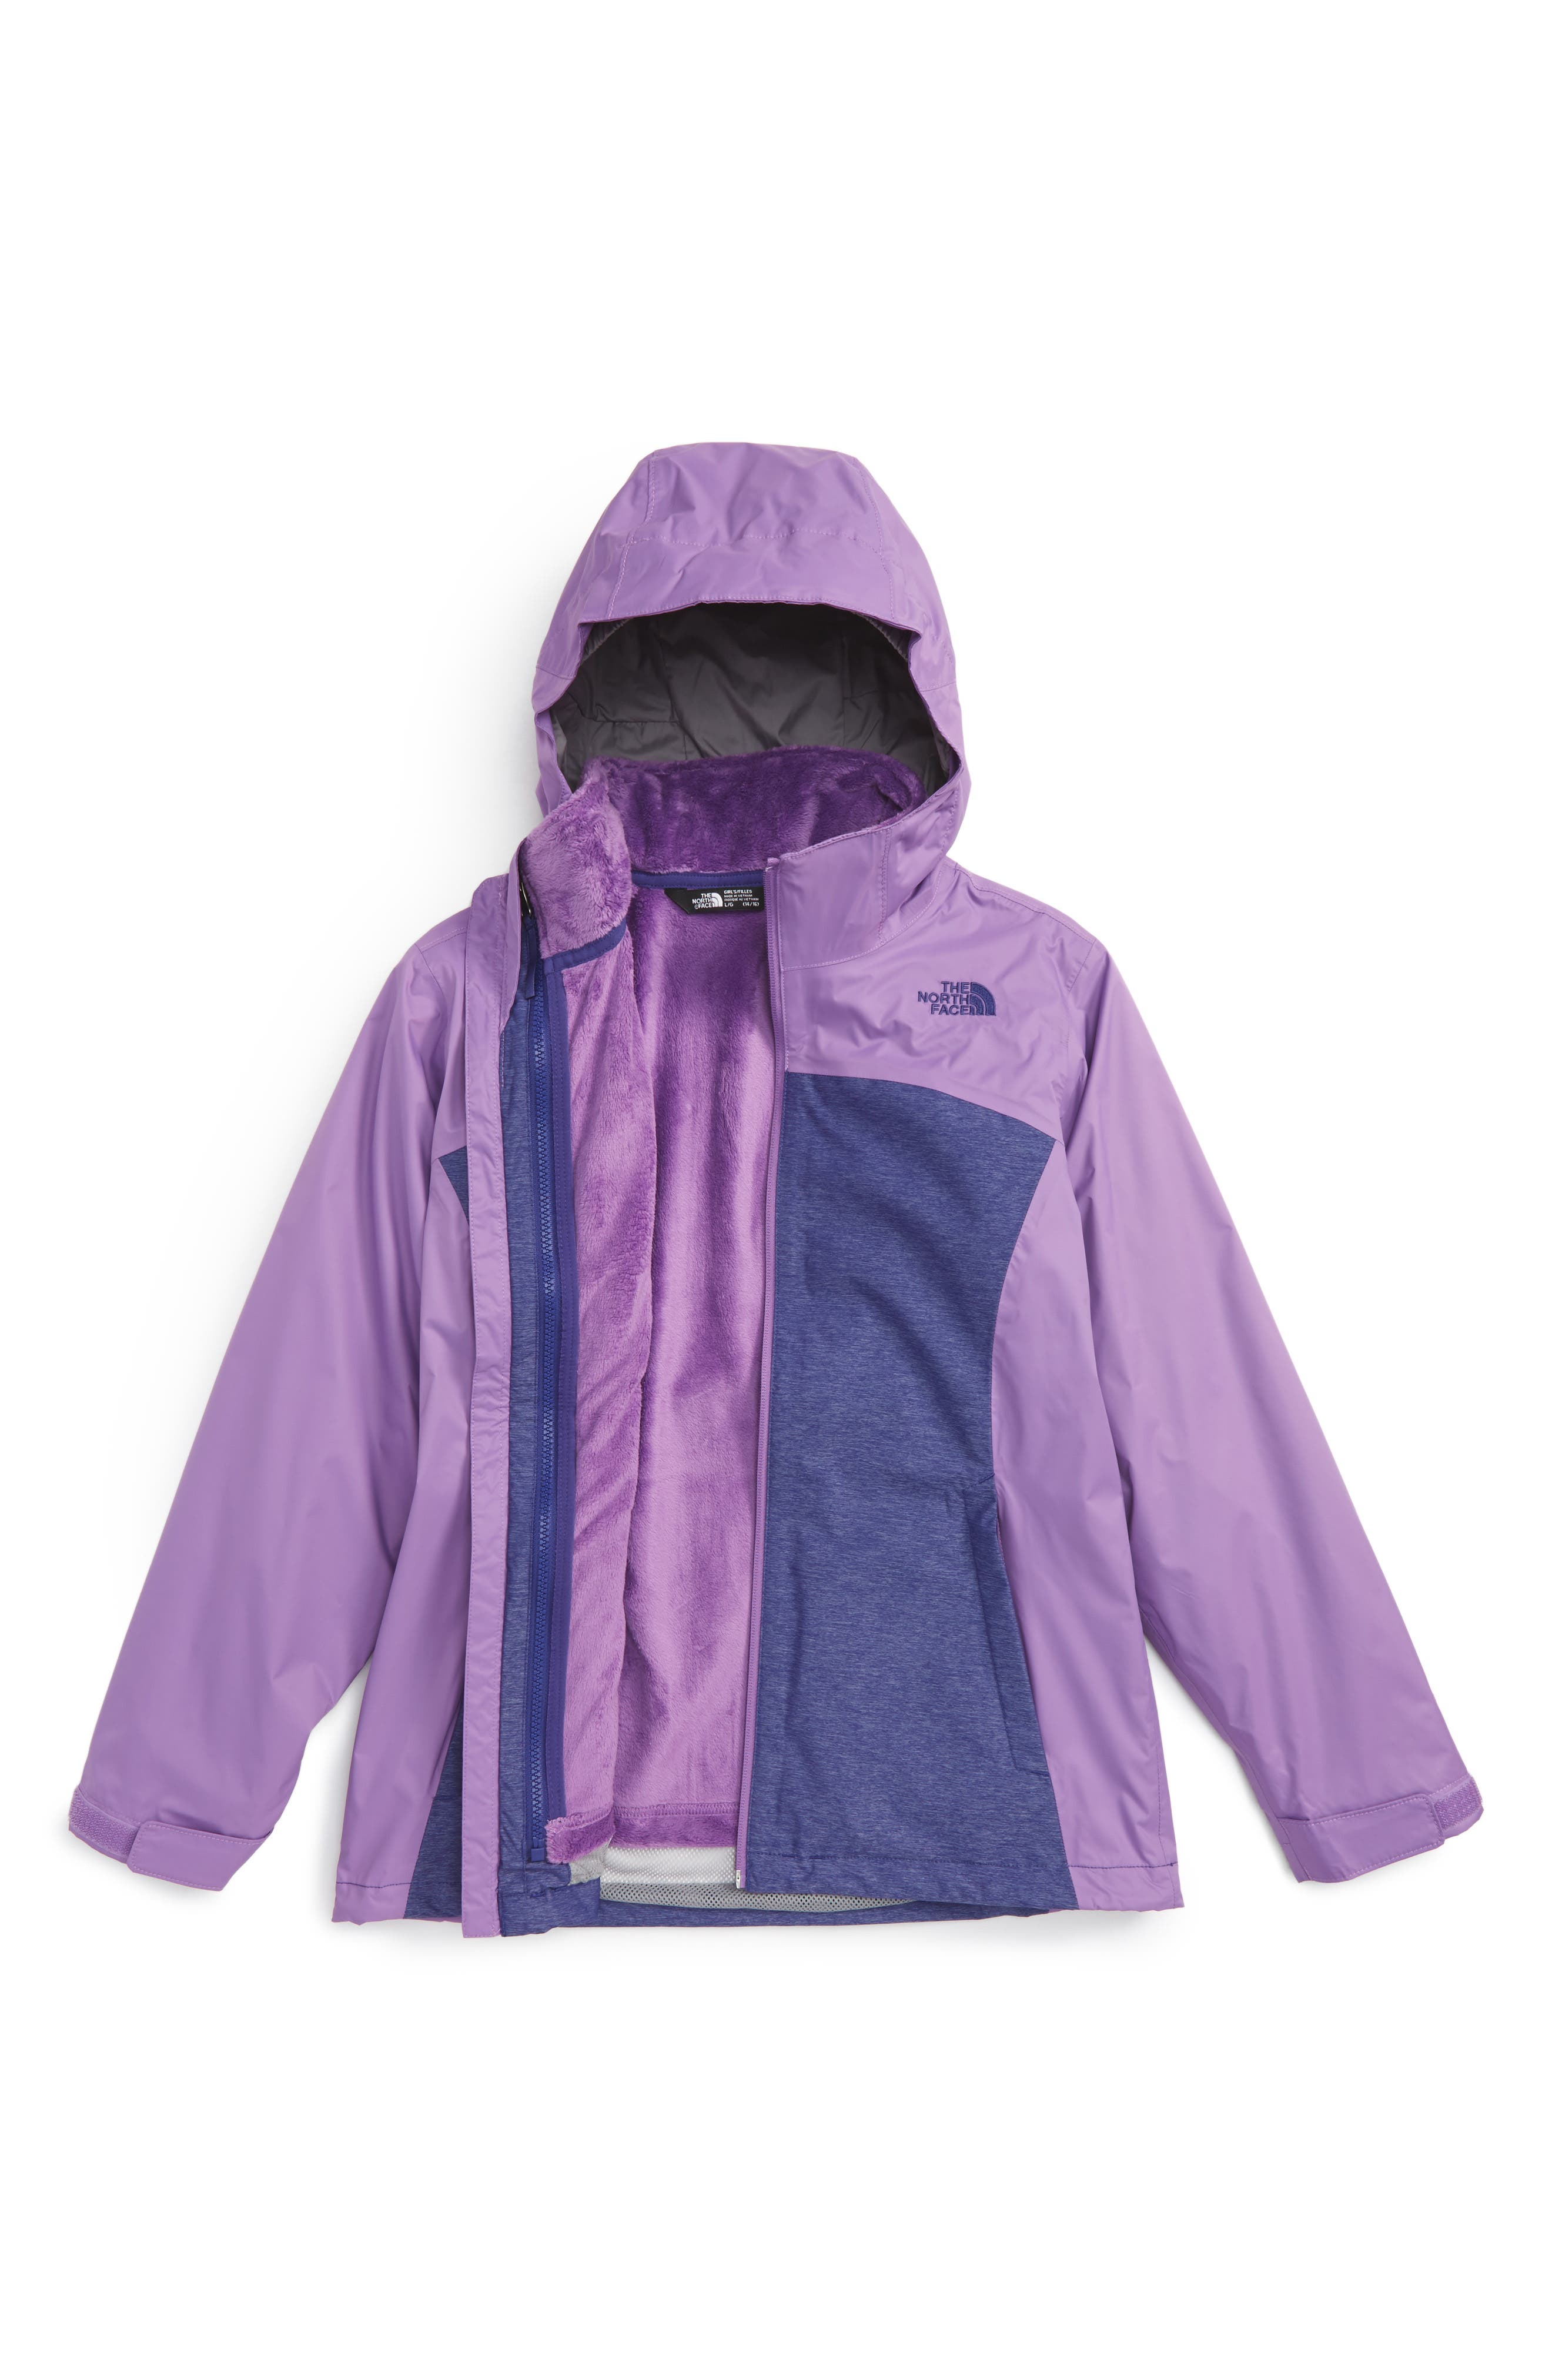 Osolita TriClimate<sup>®</sup> Waterproof 3-in-1 Jacket,                             Main thumbnail 1, color,                             510